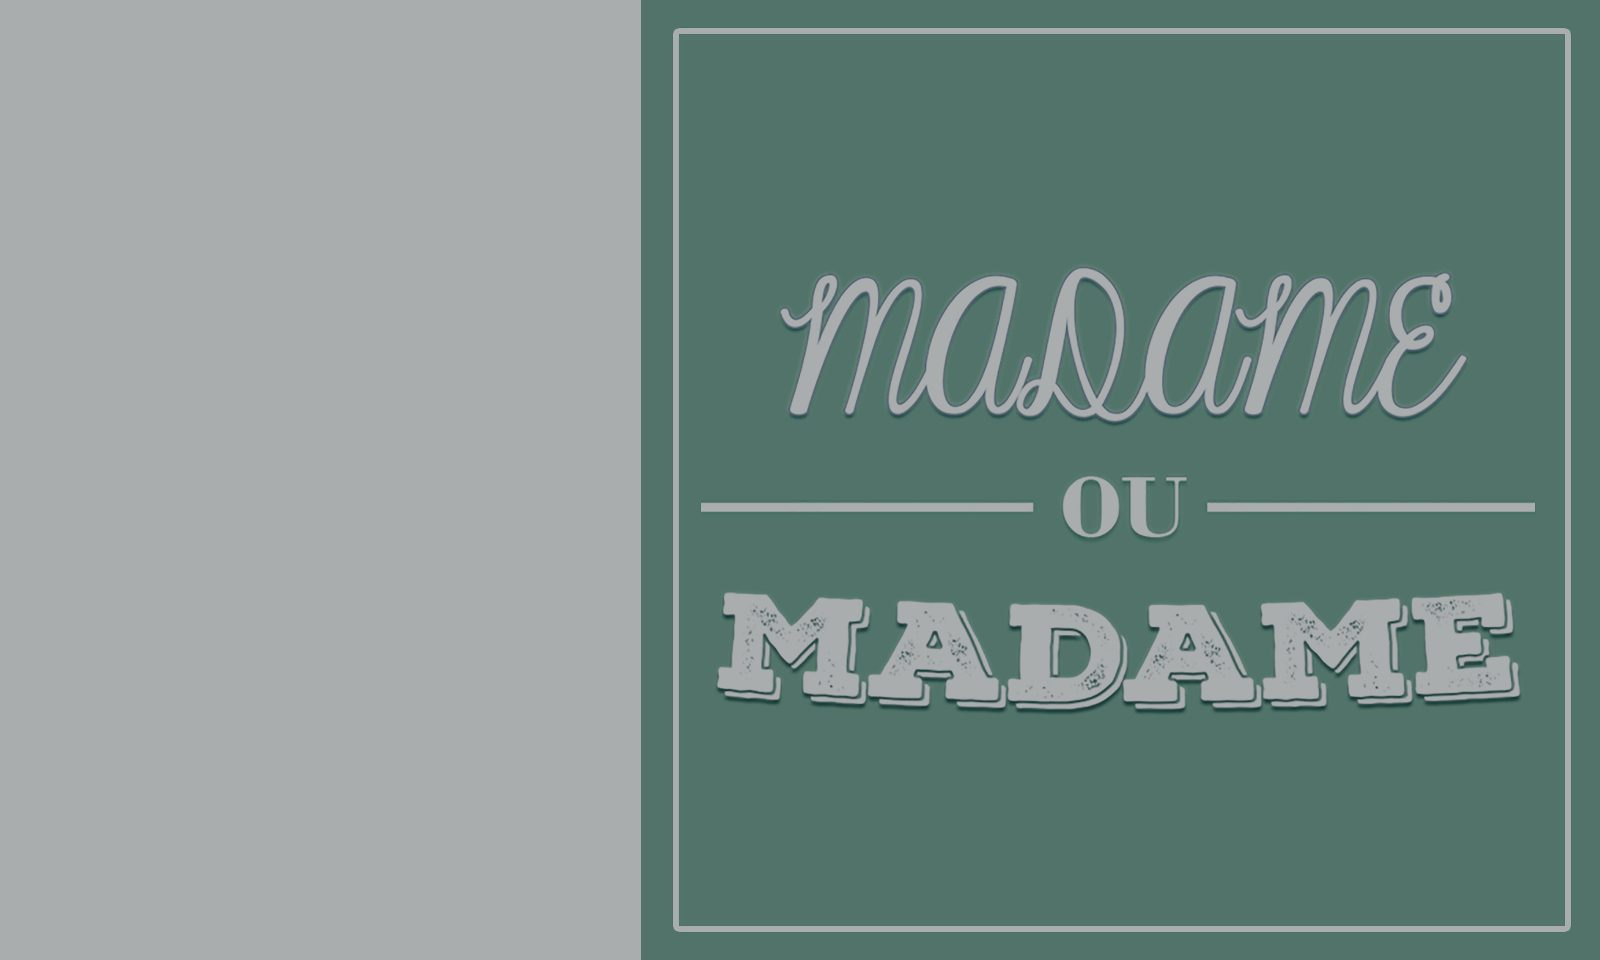 Archives juin 2019 - Madame ou Madame - L'émission de radio